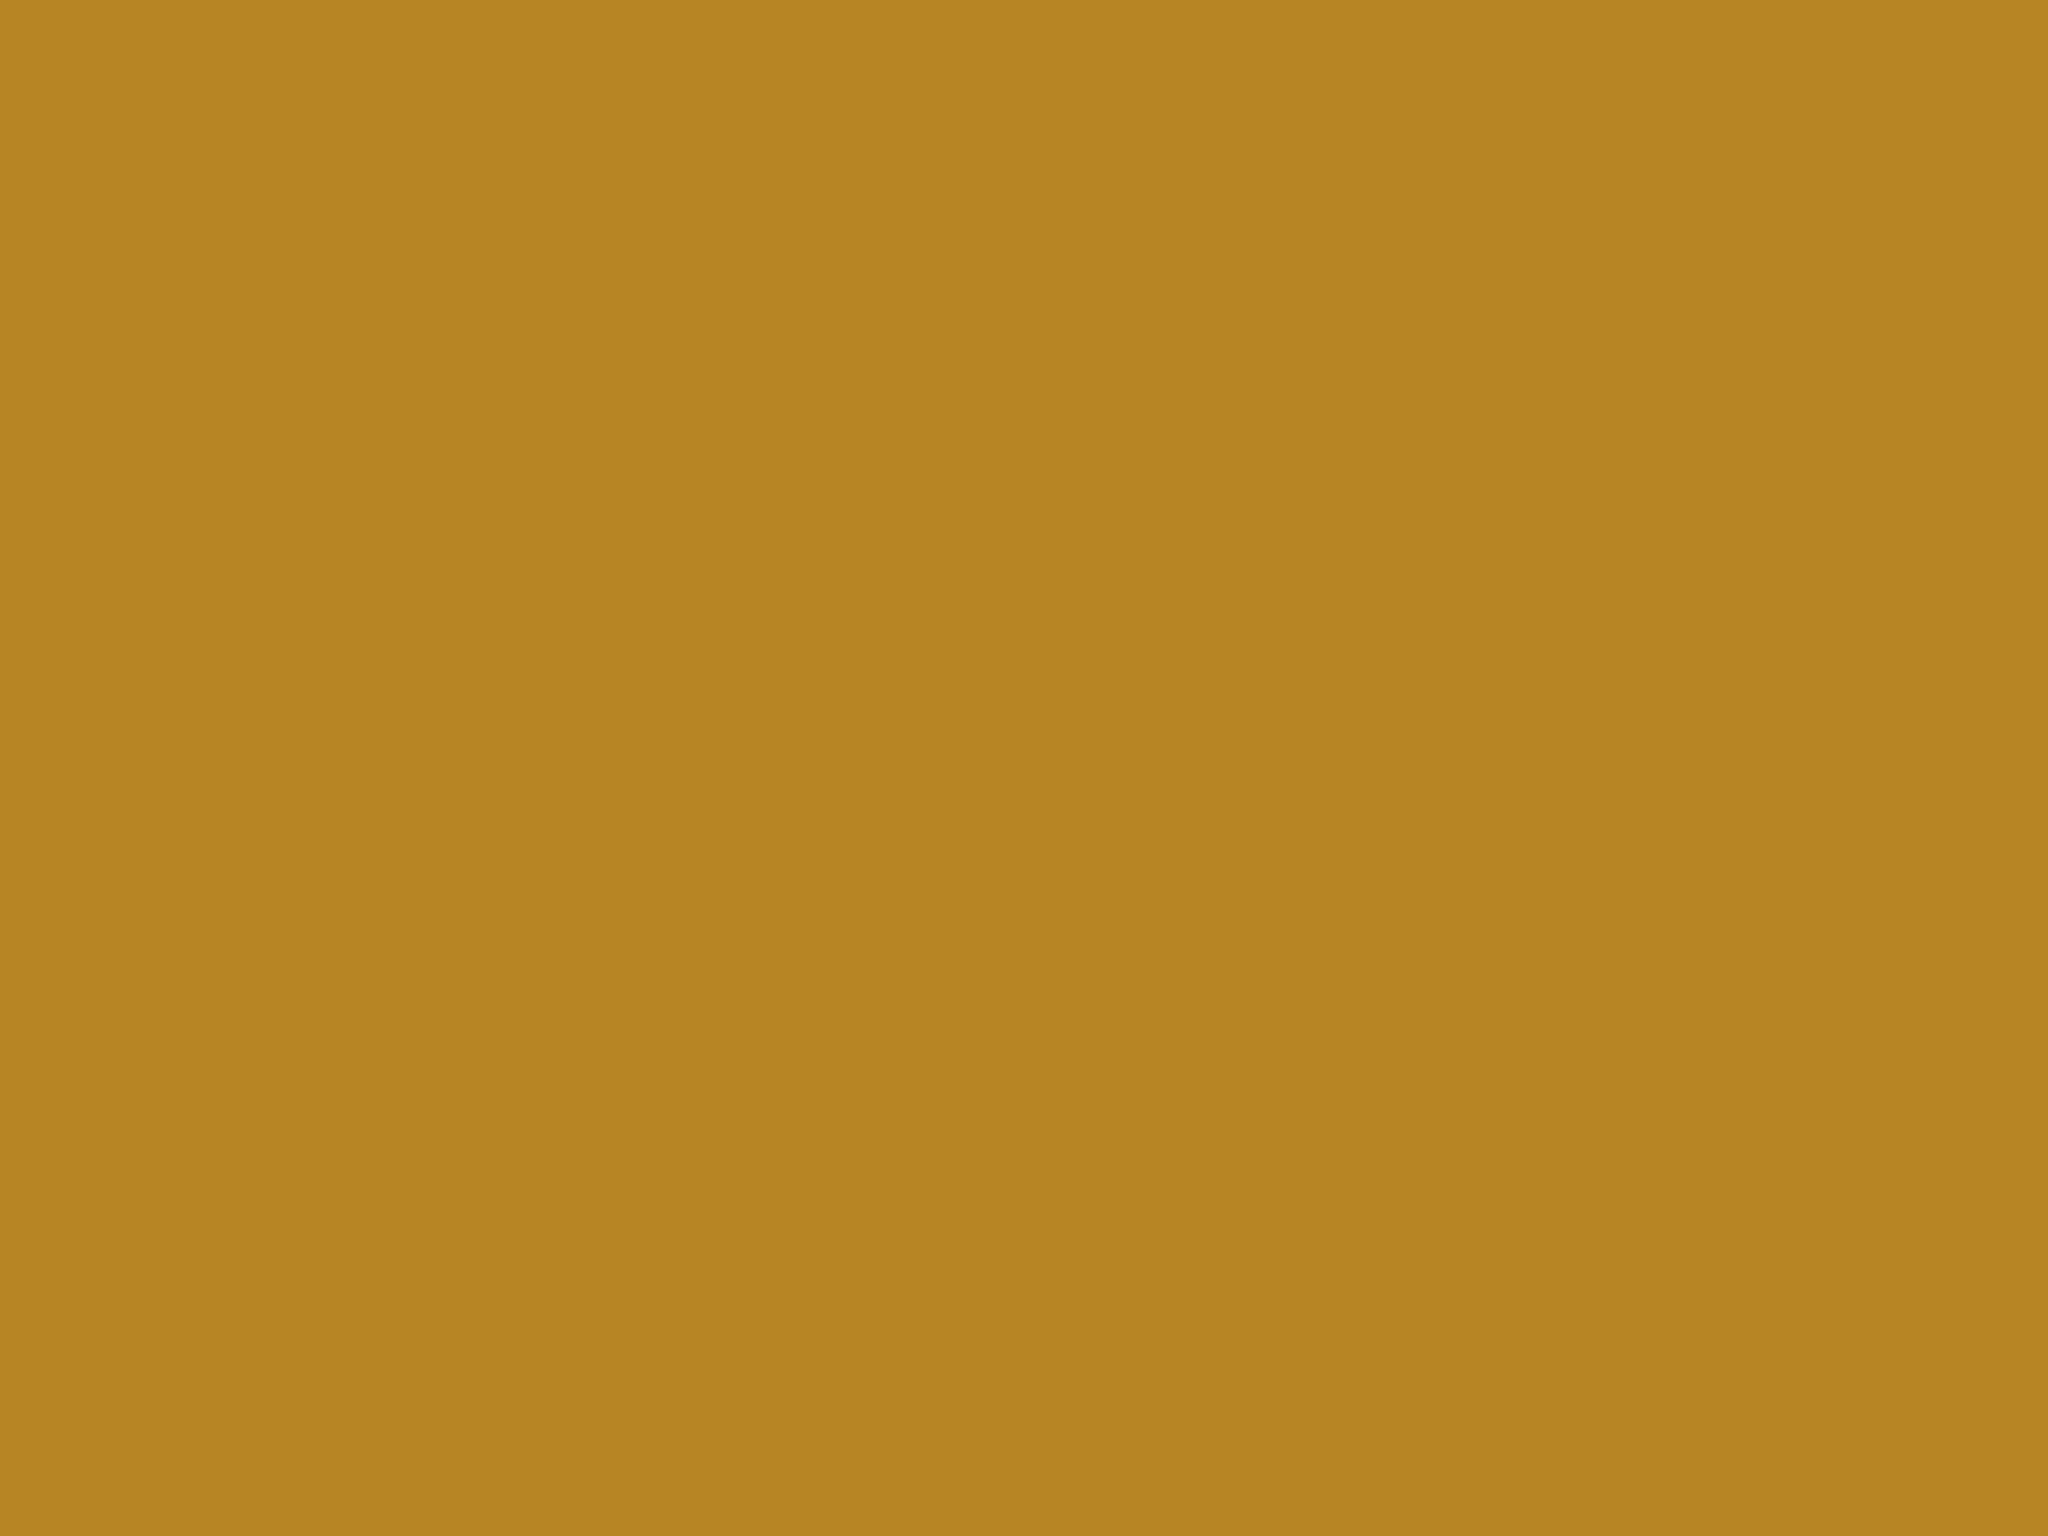 2048x1536 University Of California Gold Solid Color Background